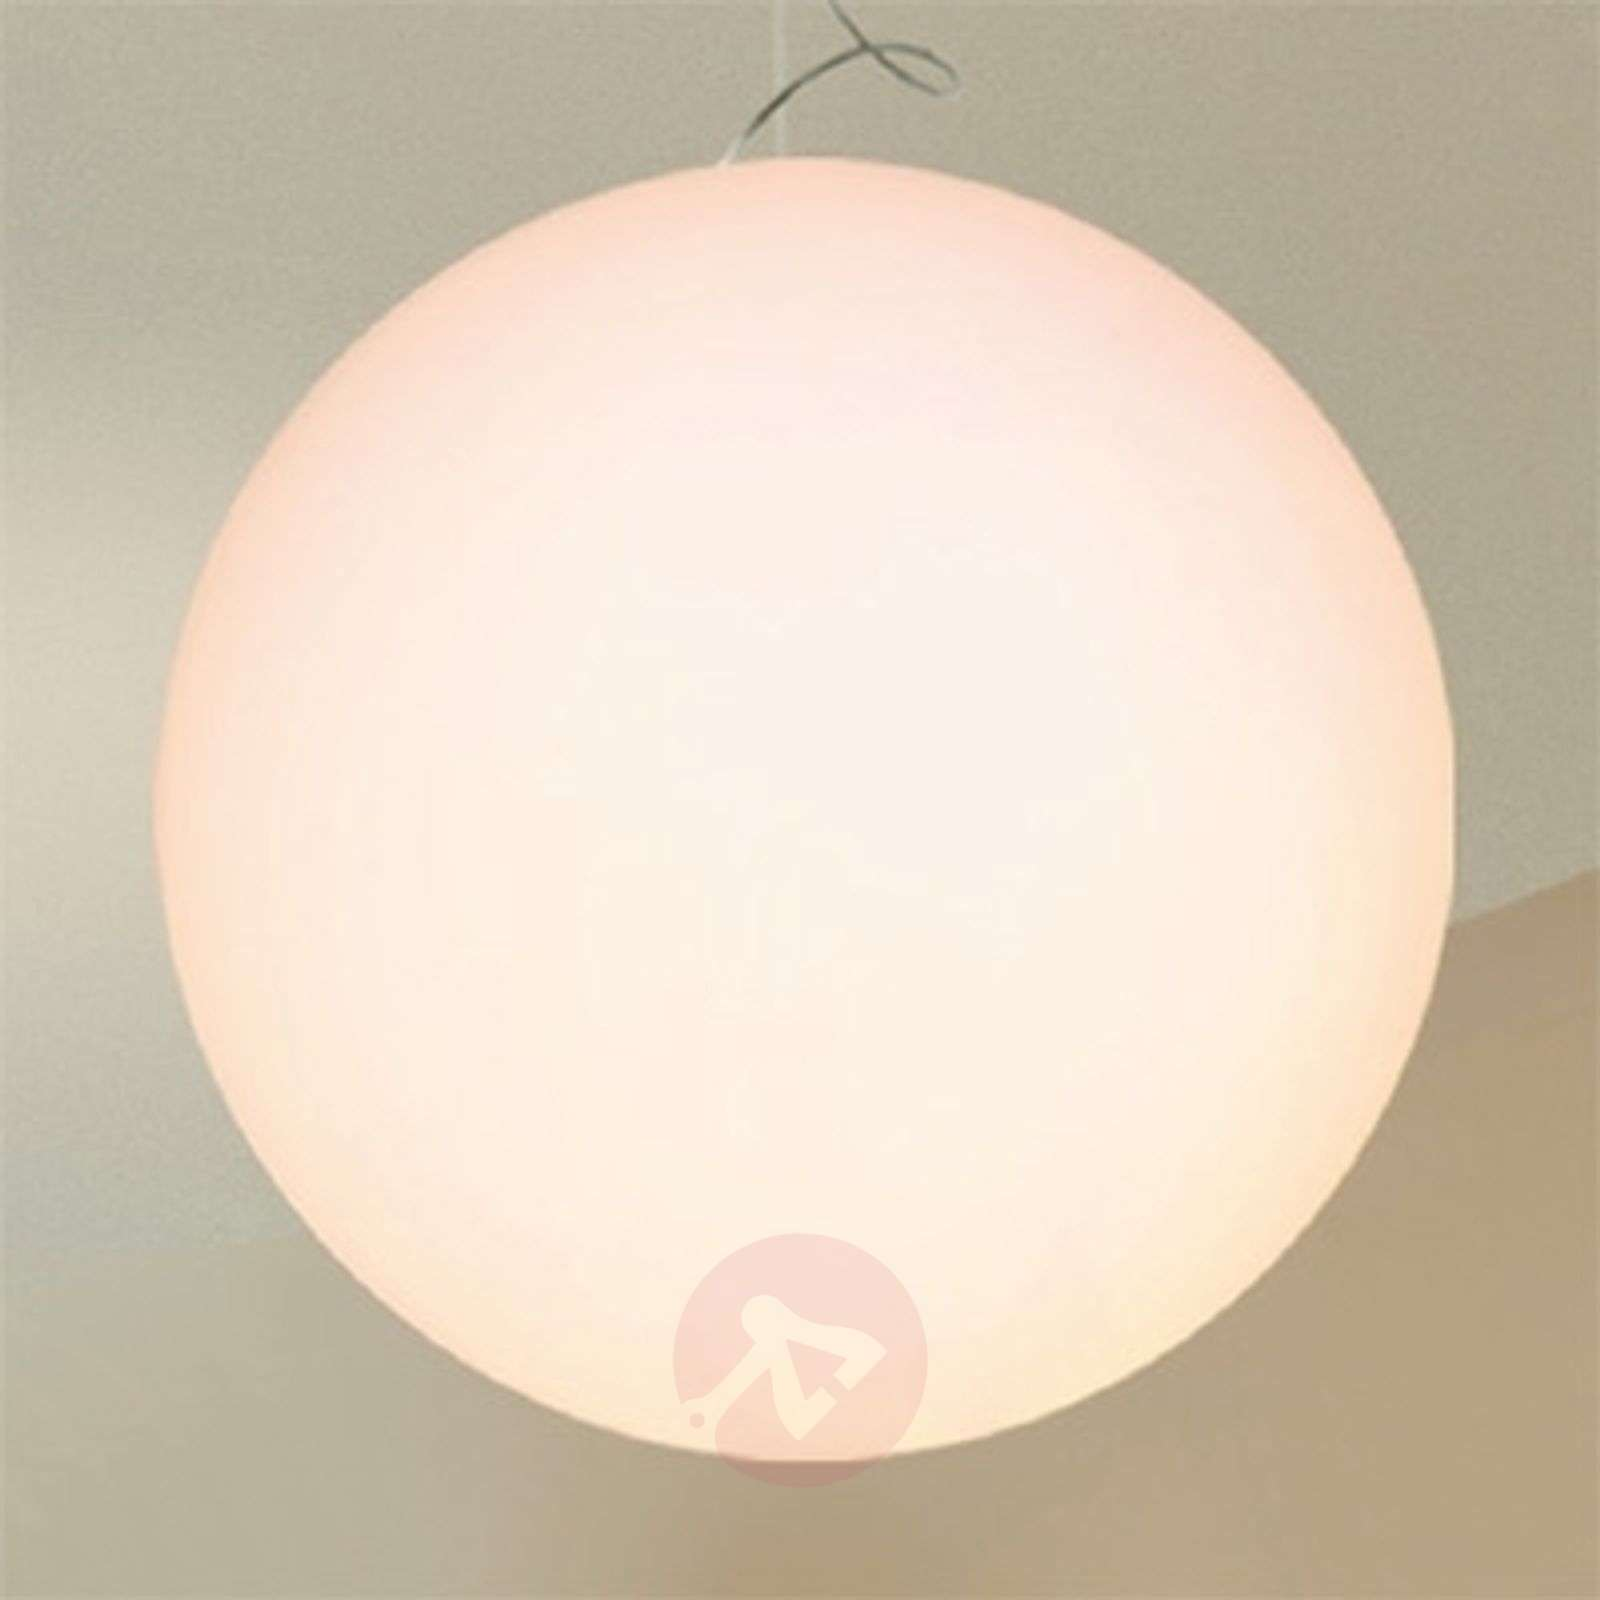 OH witte energiezuinige bolle hanglamp-6042163X-01